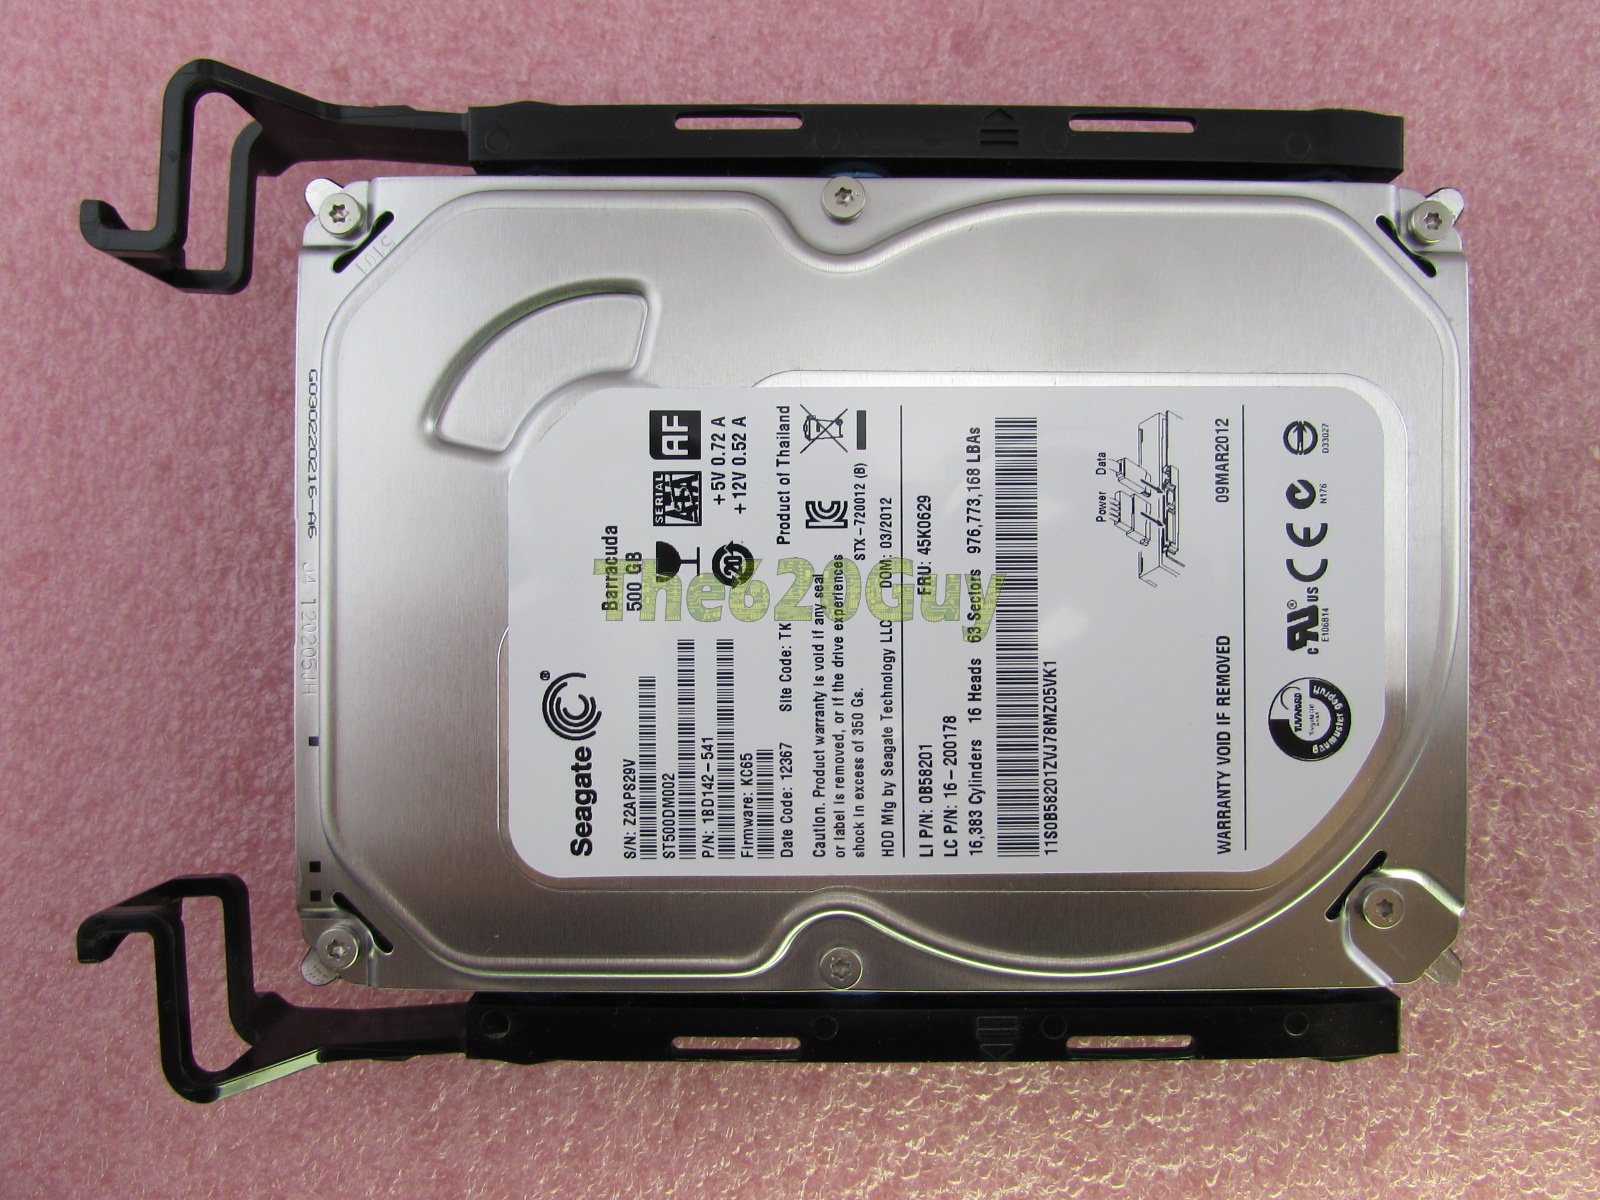 LENOVO THINKSTATION S20 SEAGATE HDD WINDOWS 8 DRIVERS DOWNLOAD